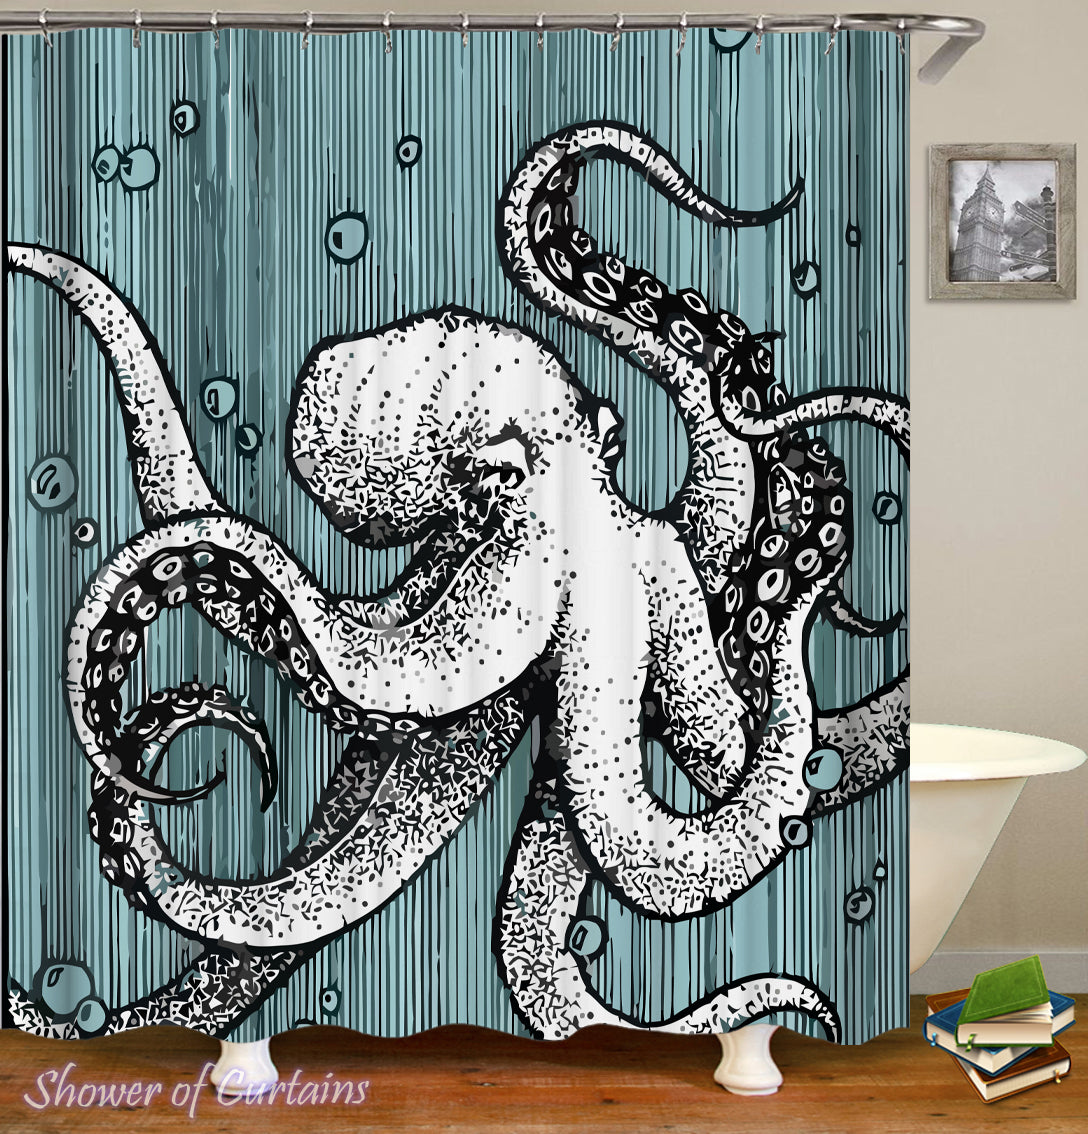 Black And White Octopus Shower Curtain